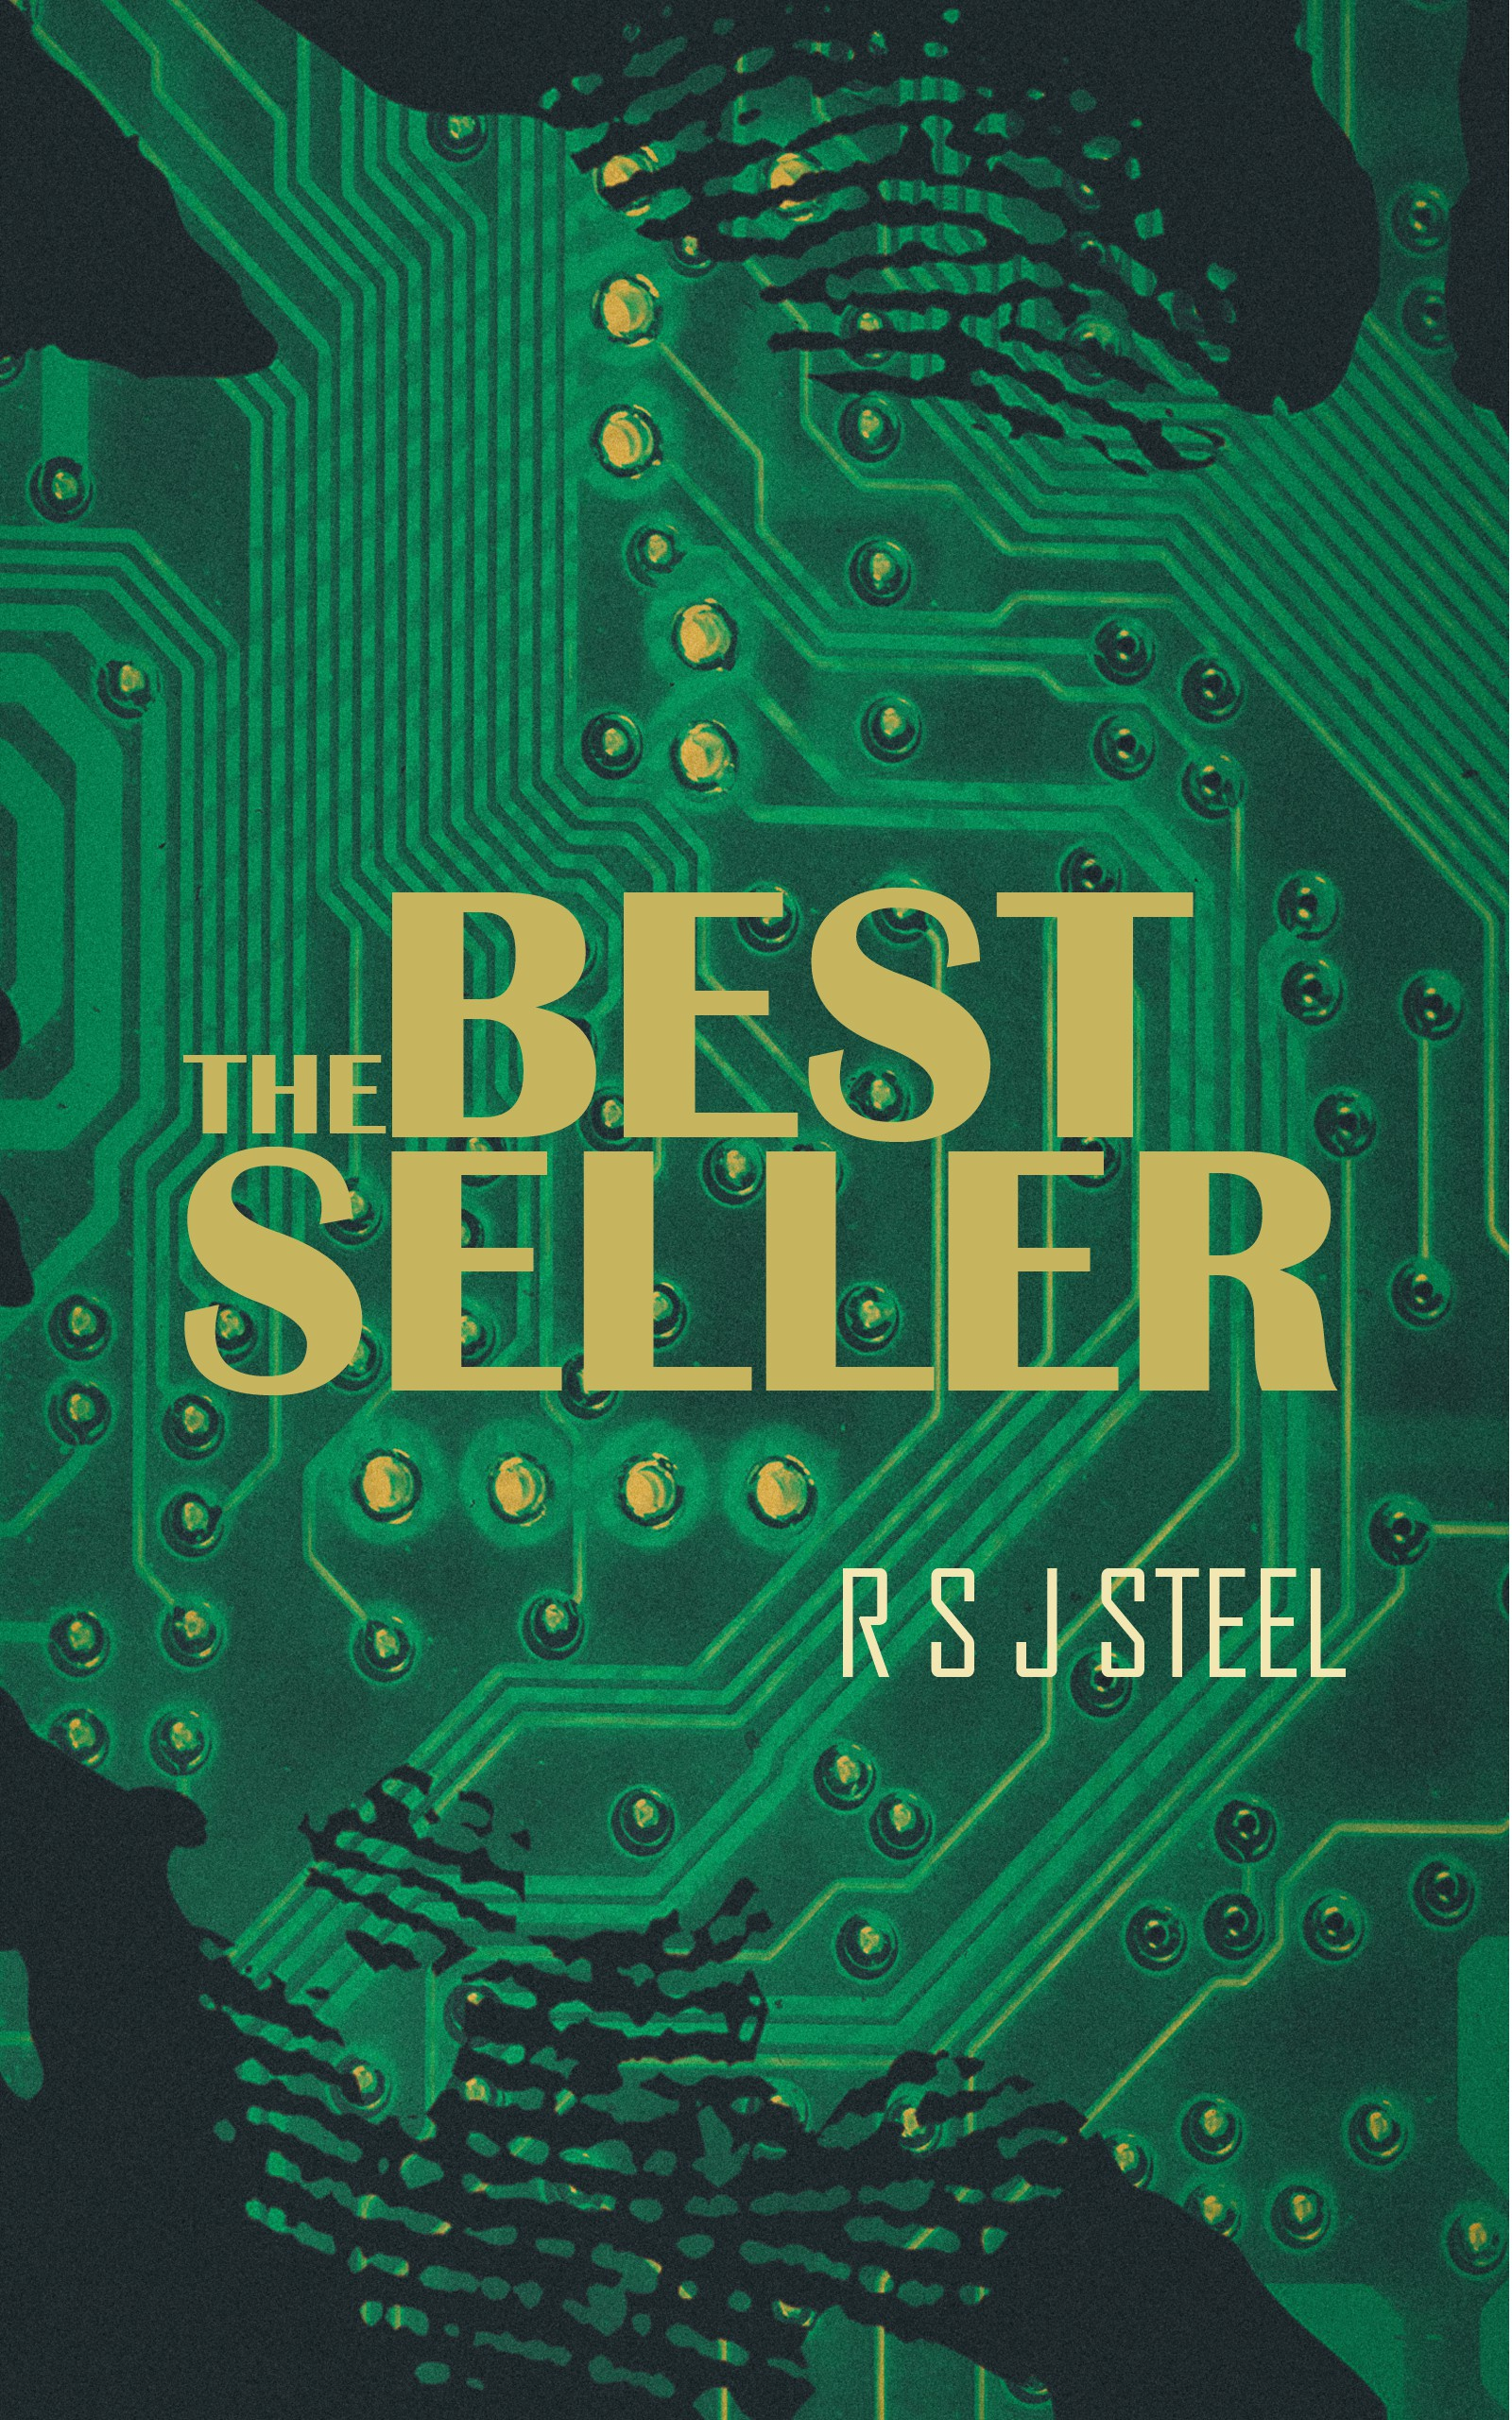 Design a cover for The Best Seller...